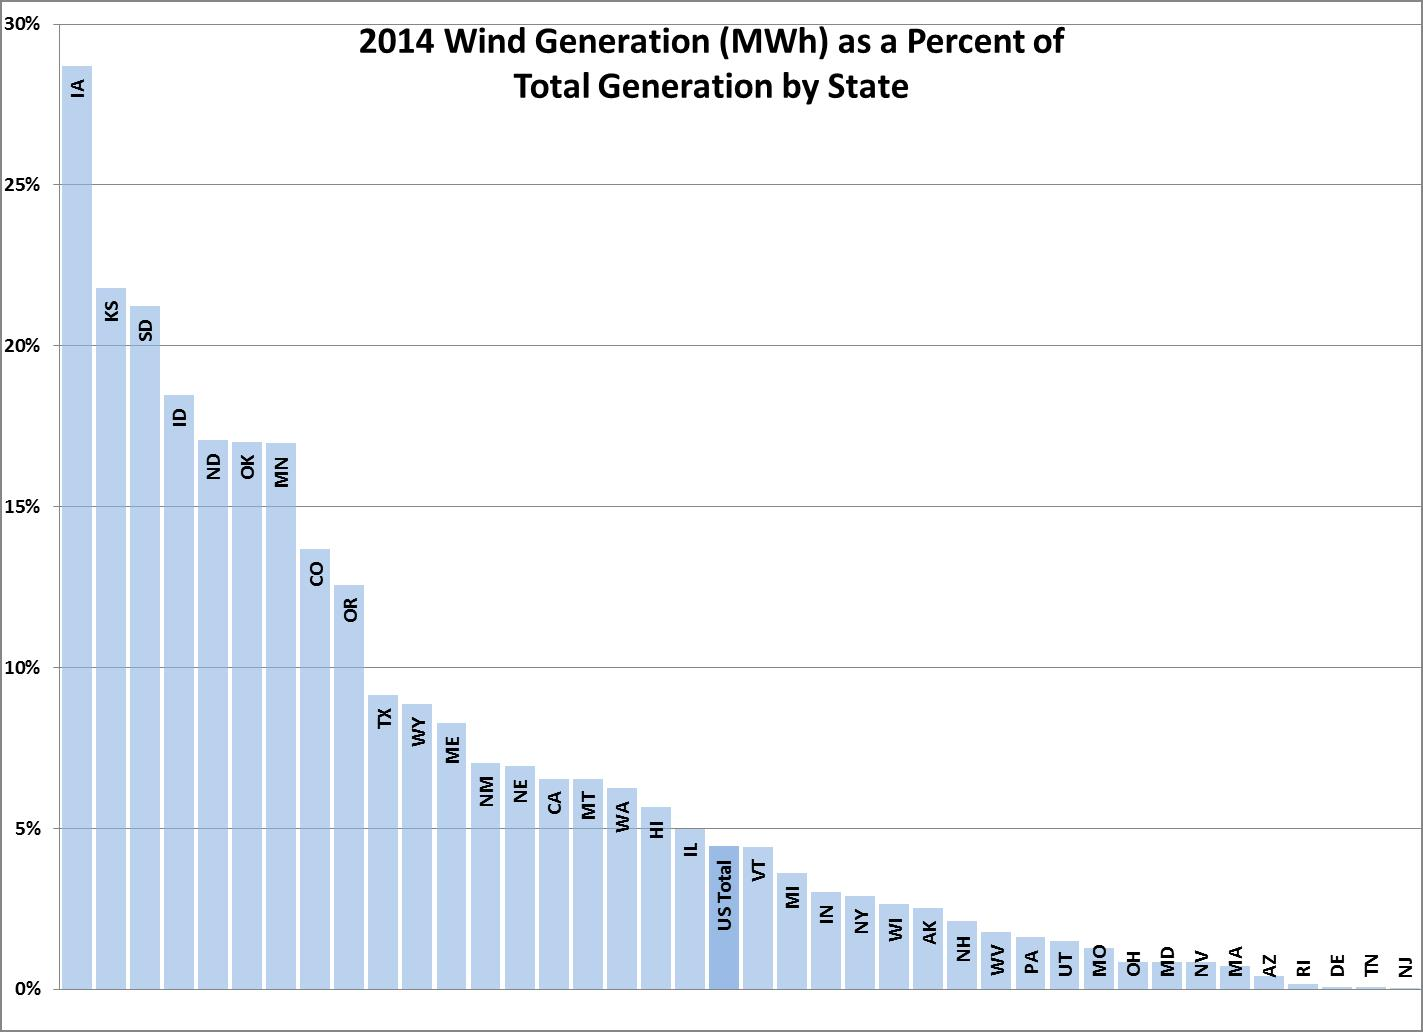 Chart of 2014 Wind Generation as a percent of total generation by state